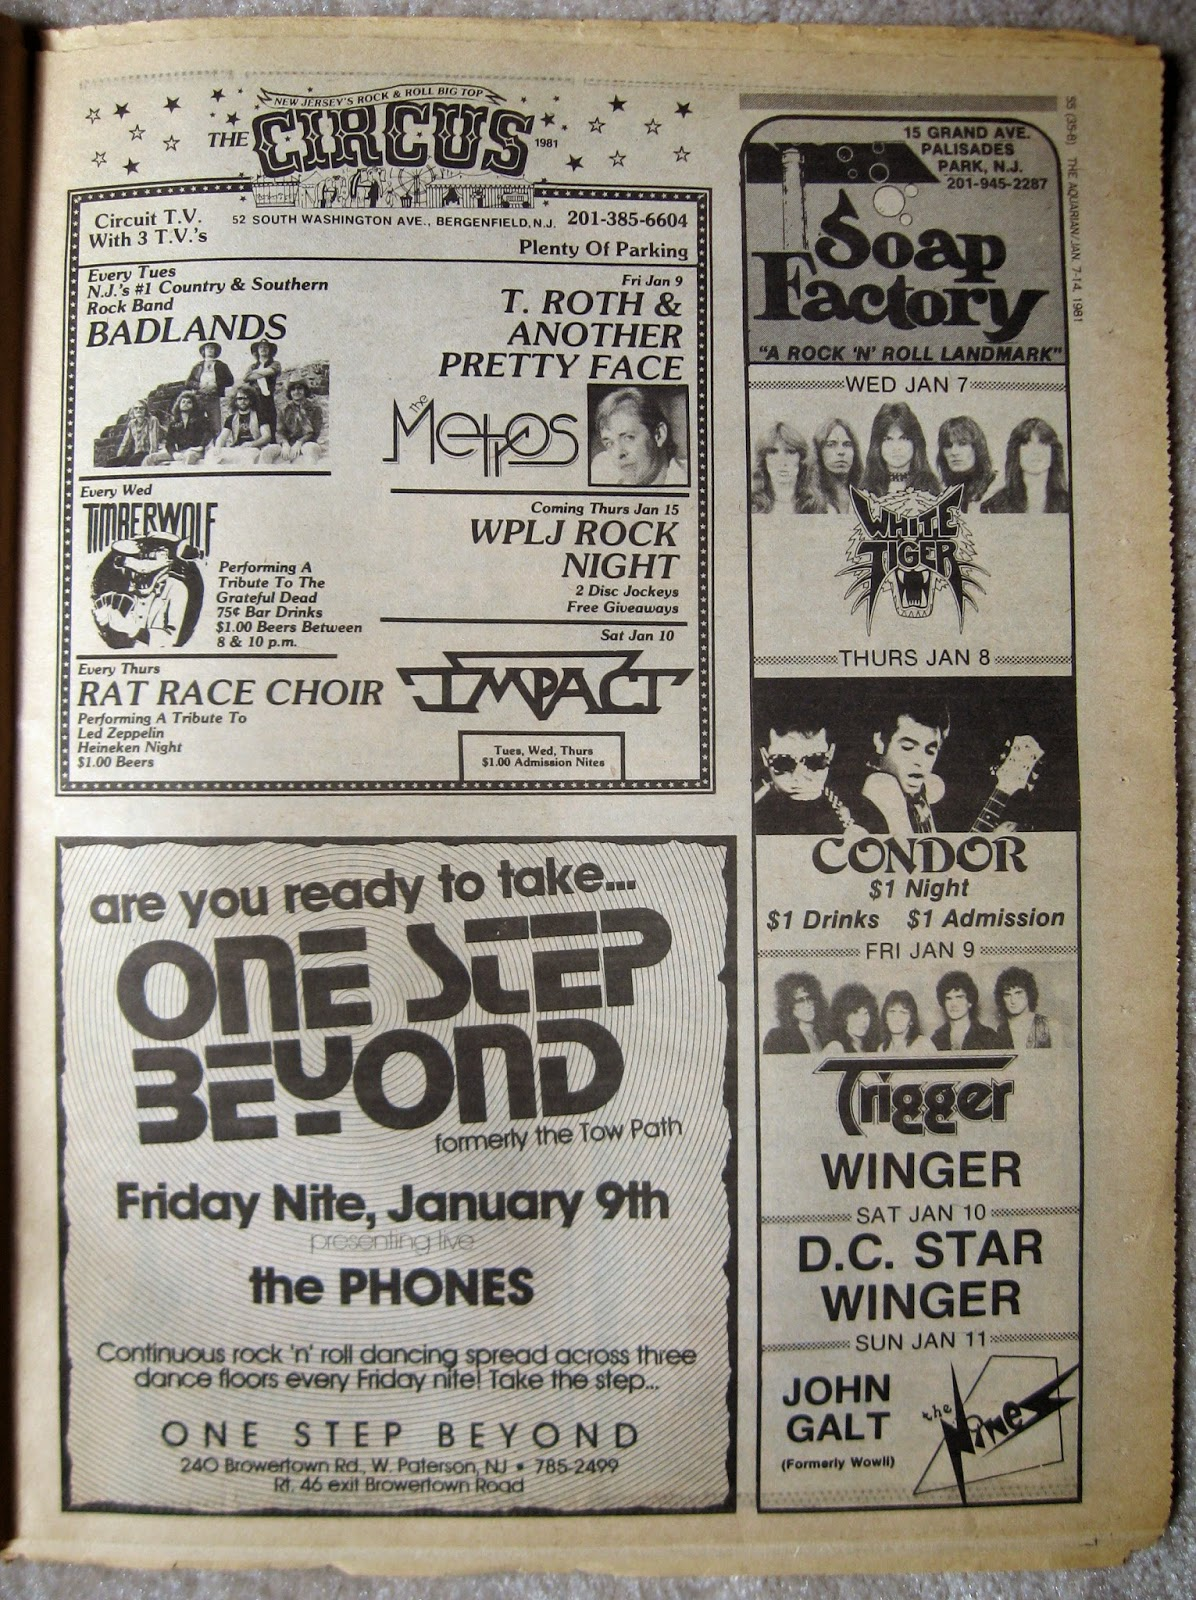 The Circus - Soap Factory - One Step Beyond band line ups 1981